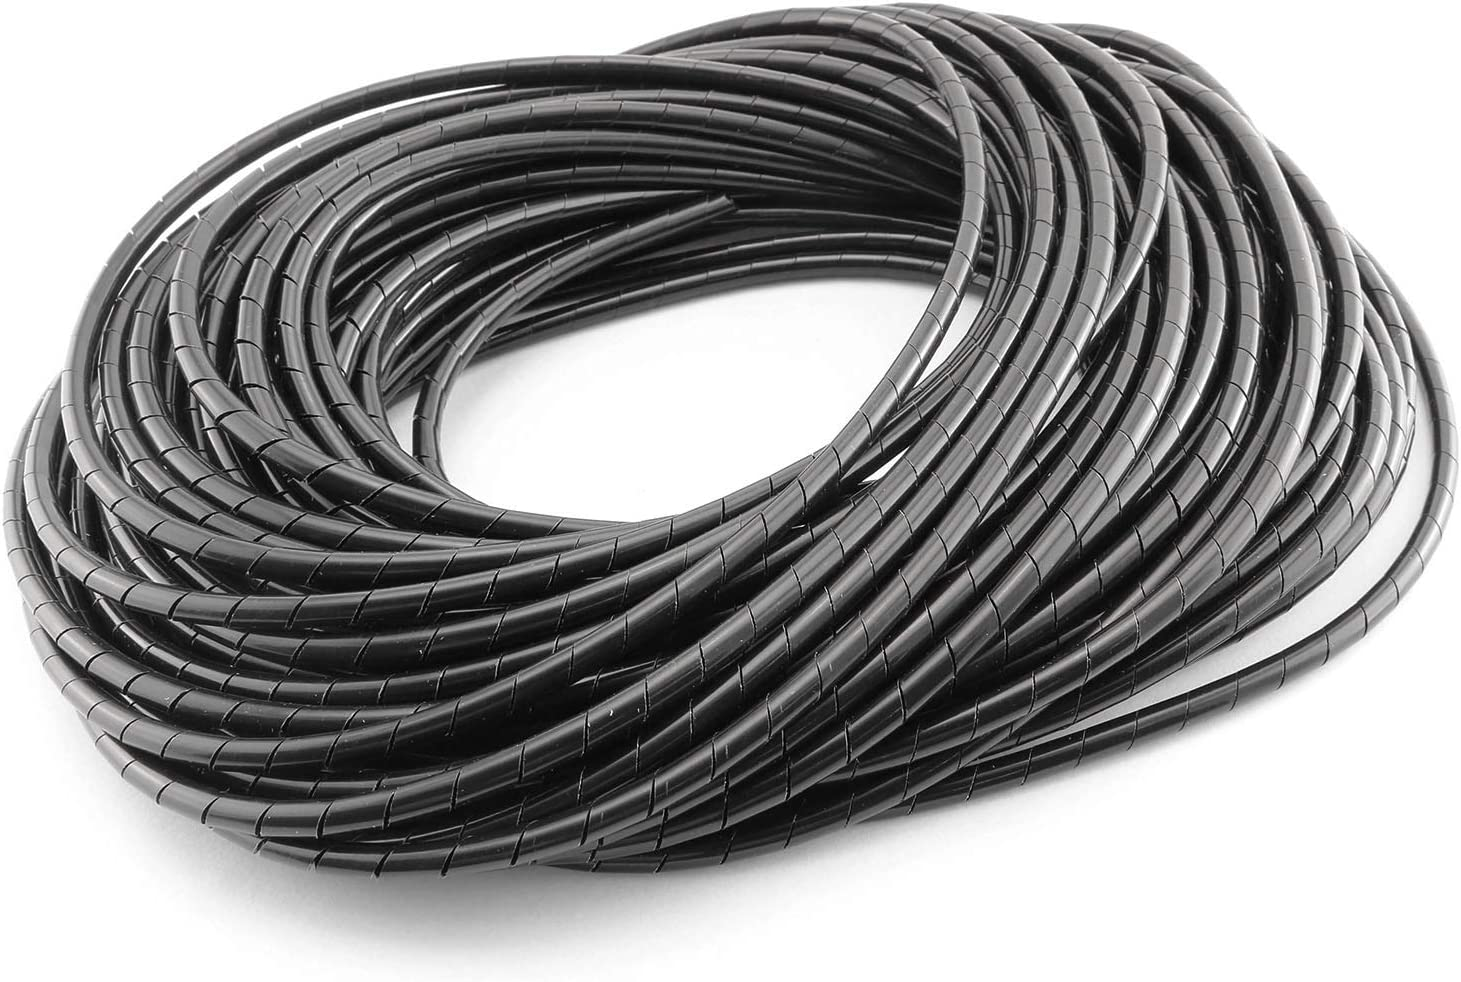 5mm 15m spiral cable wire wrap tube computer cord tidy management tool flexiH LD